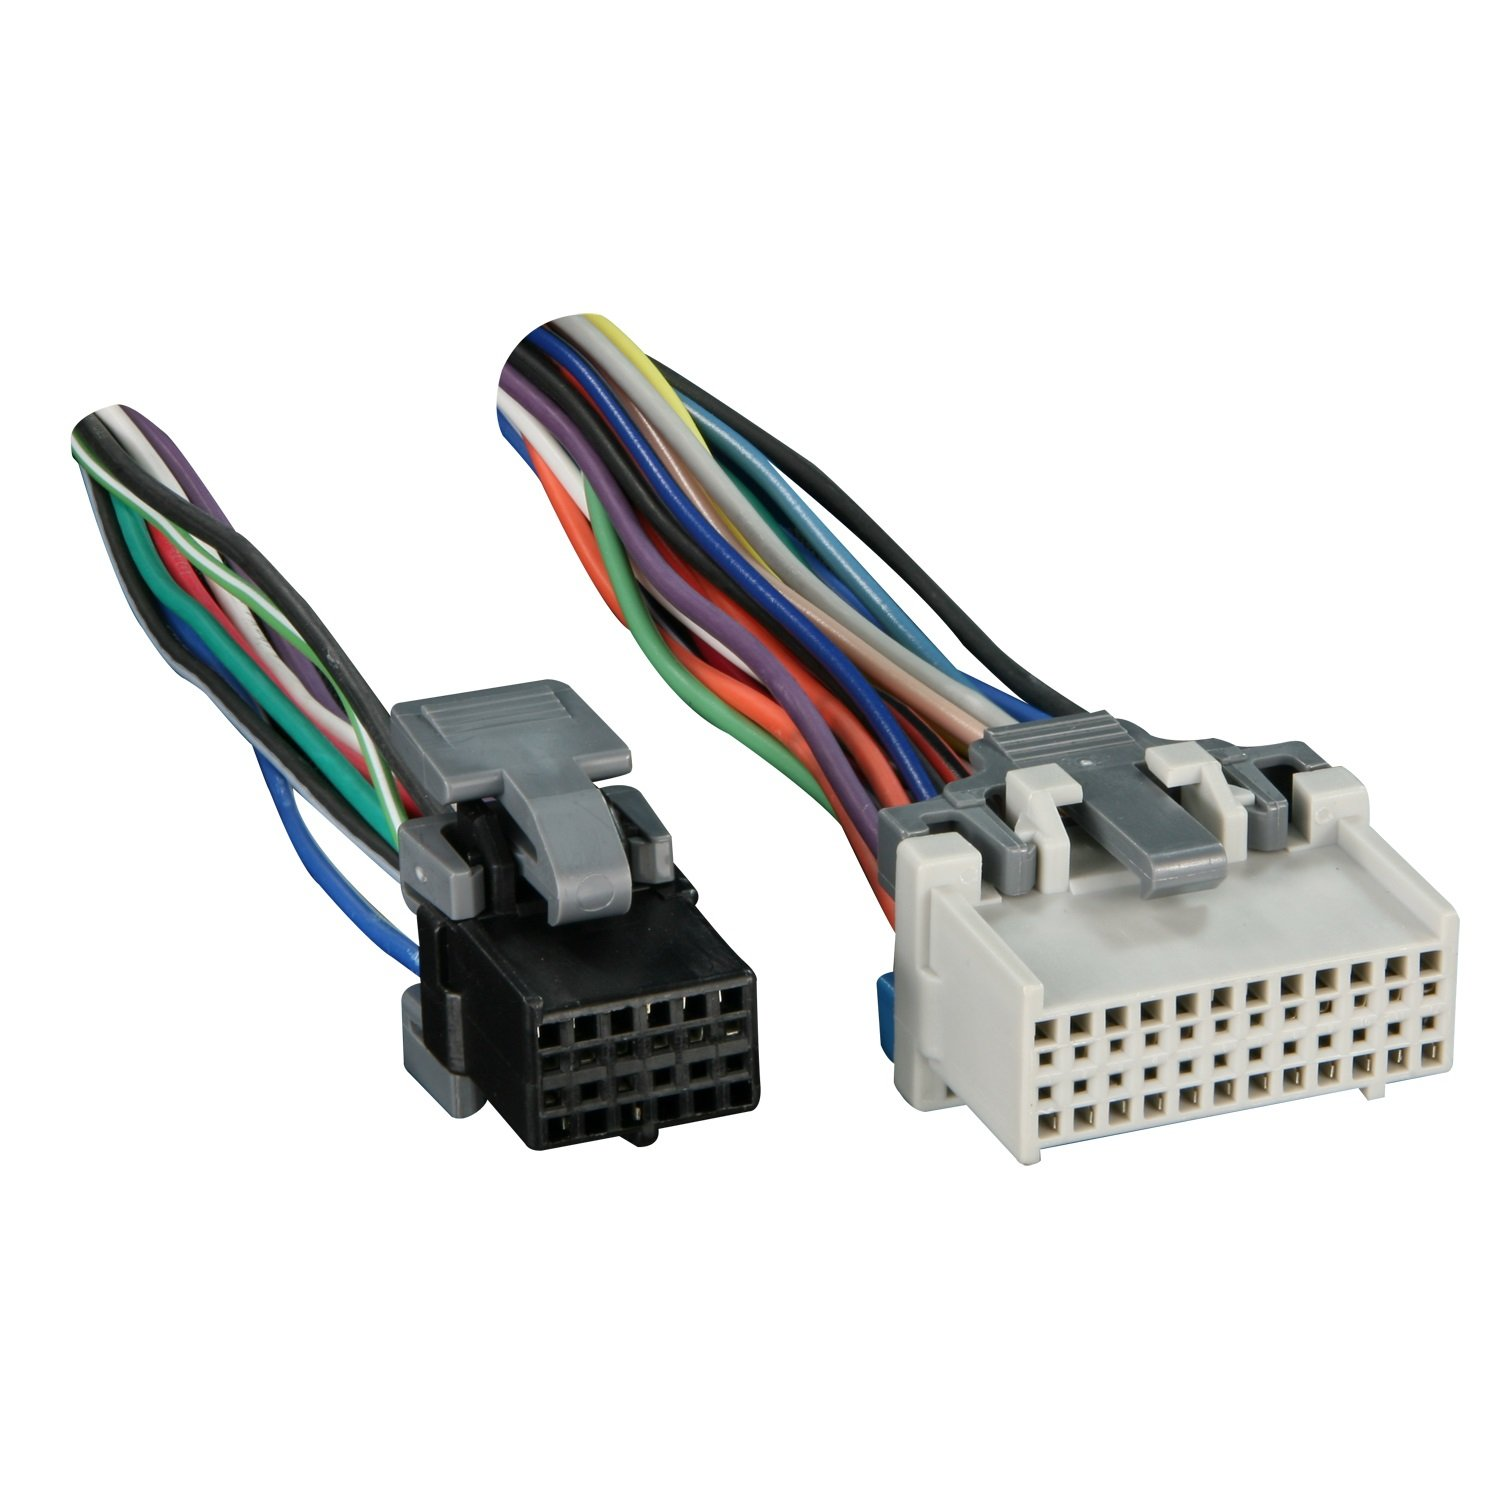 711log4bdML._SL1500_ amazon com metra turbowires 71 2003 1 wiring harness car electronics  at edmiracle.co